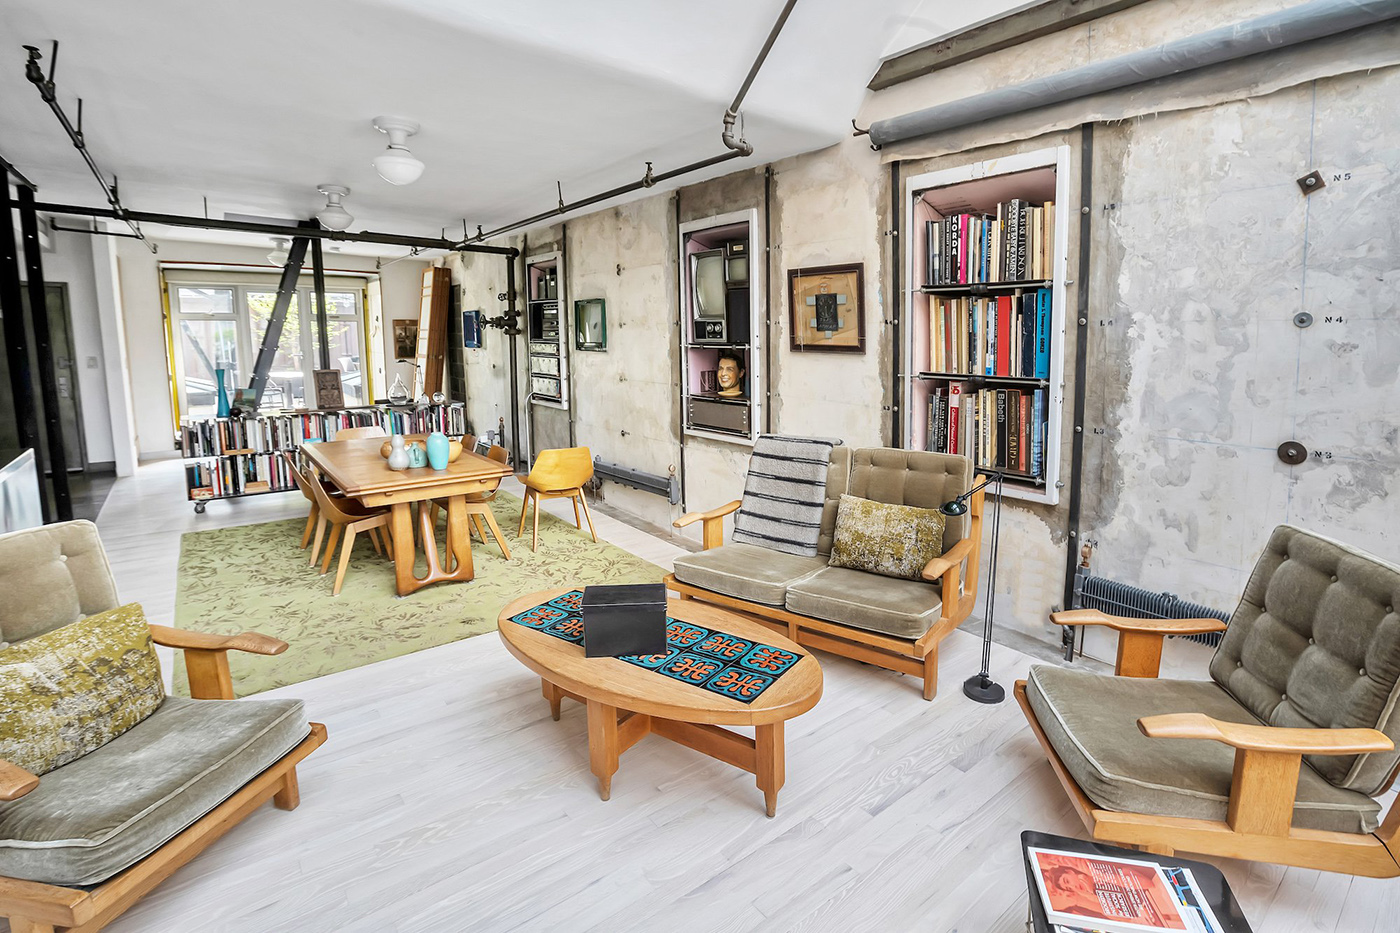 The apartment takes over the Manhattan building's former mechanics room